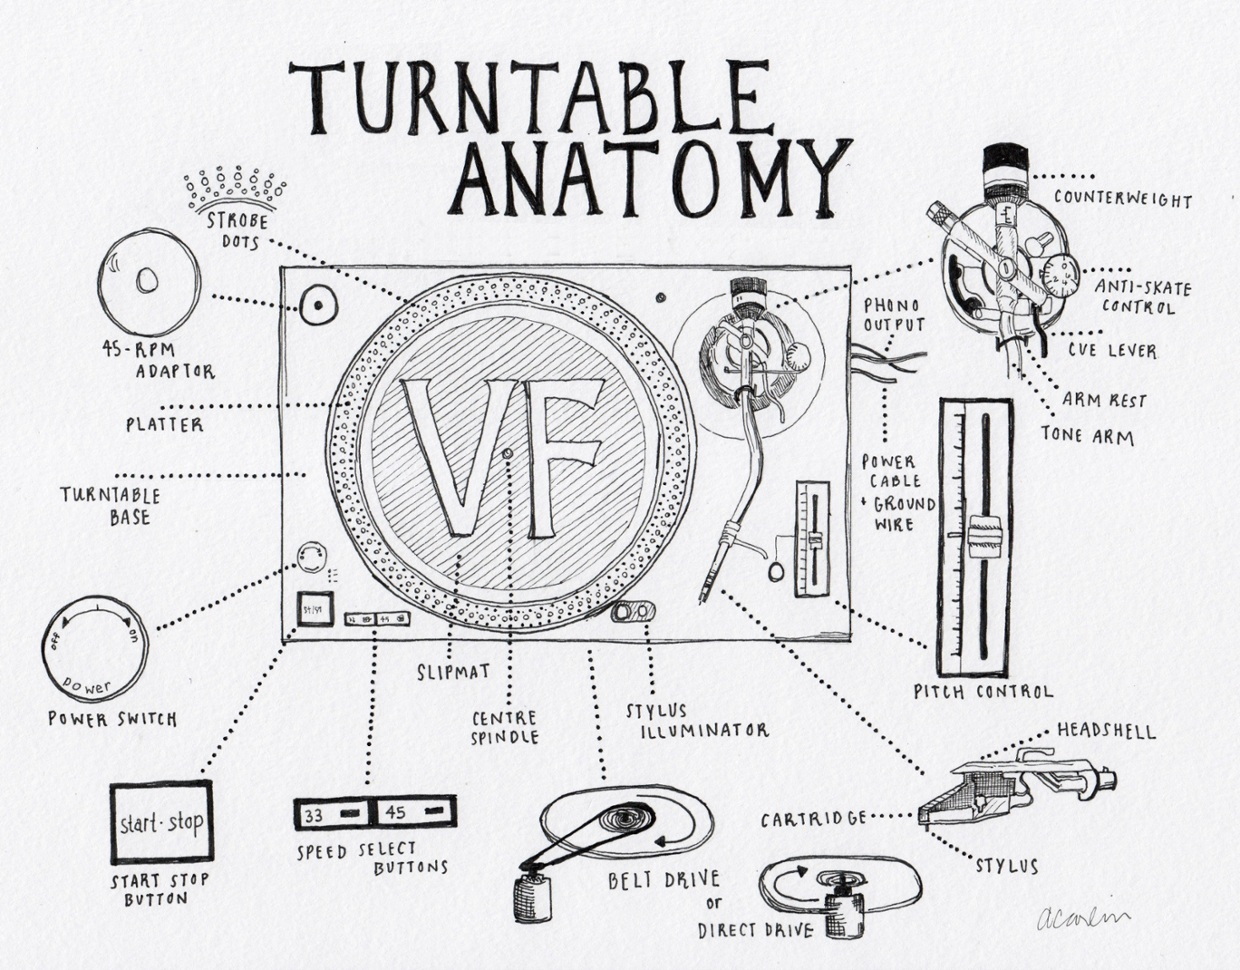 The Anatomy of the Turntable